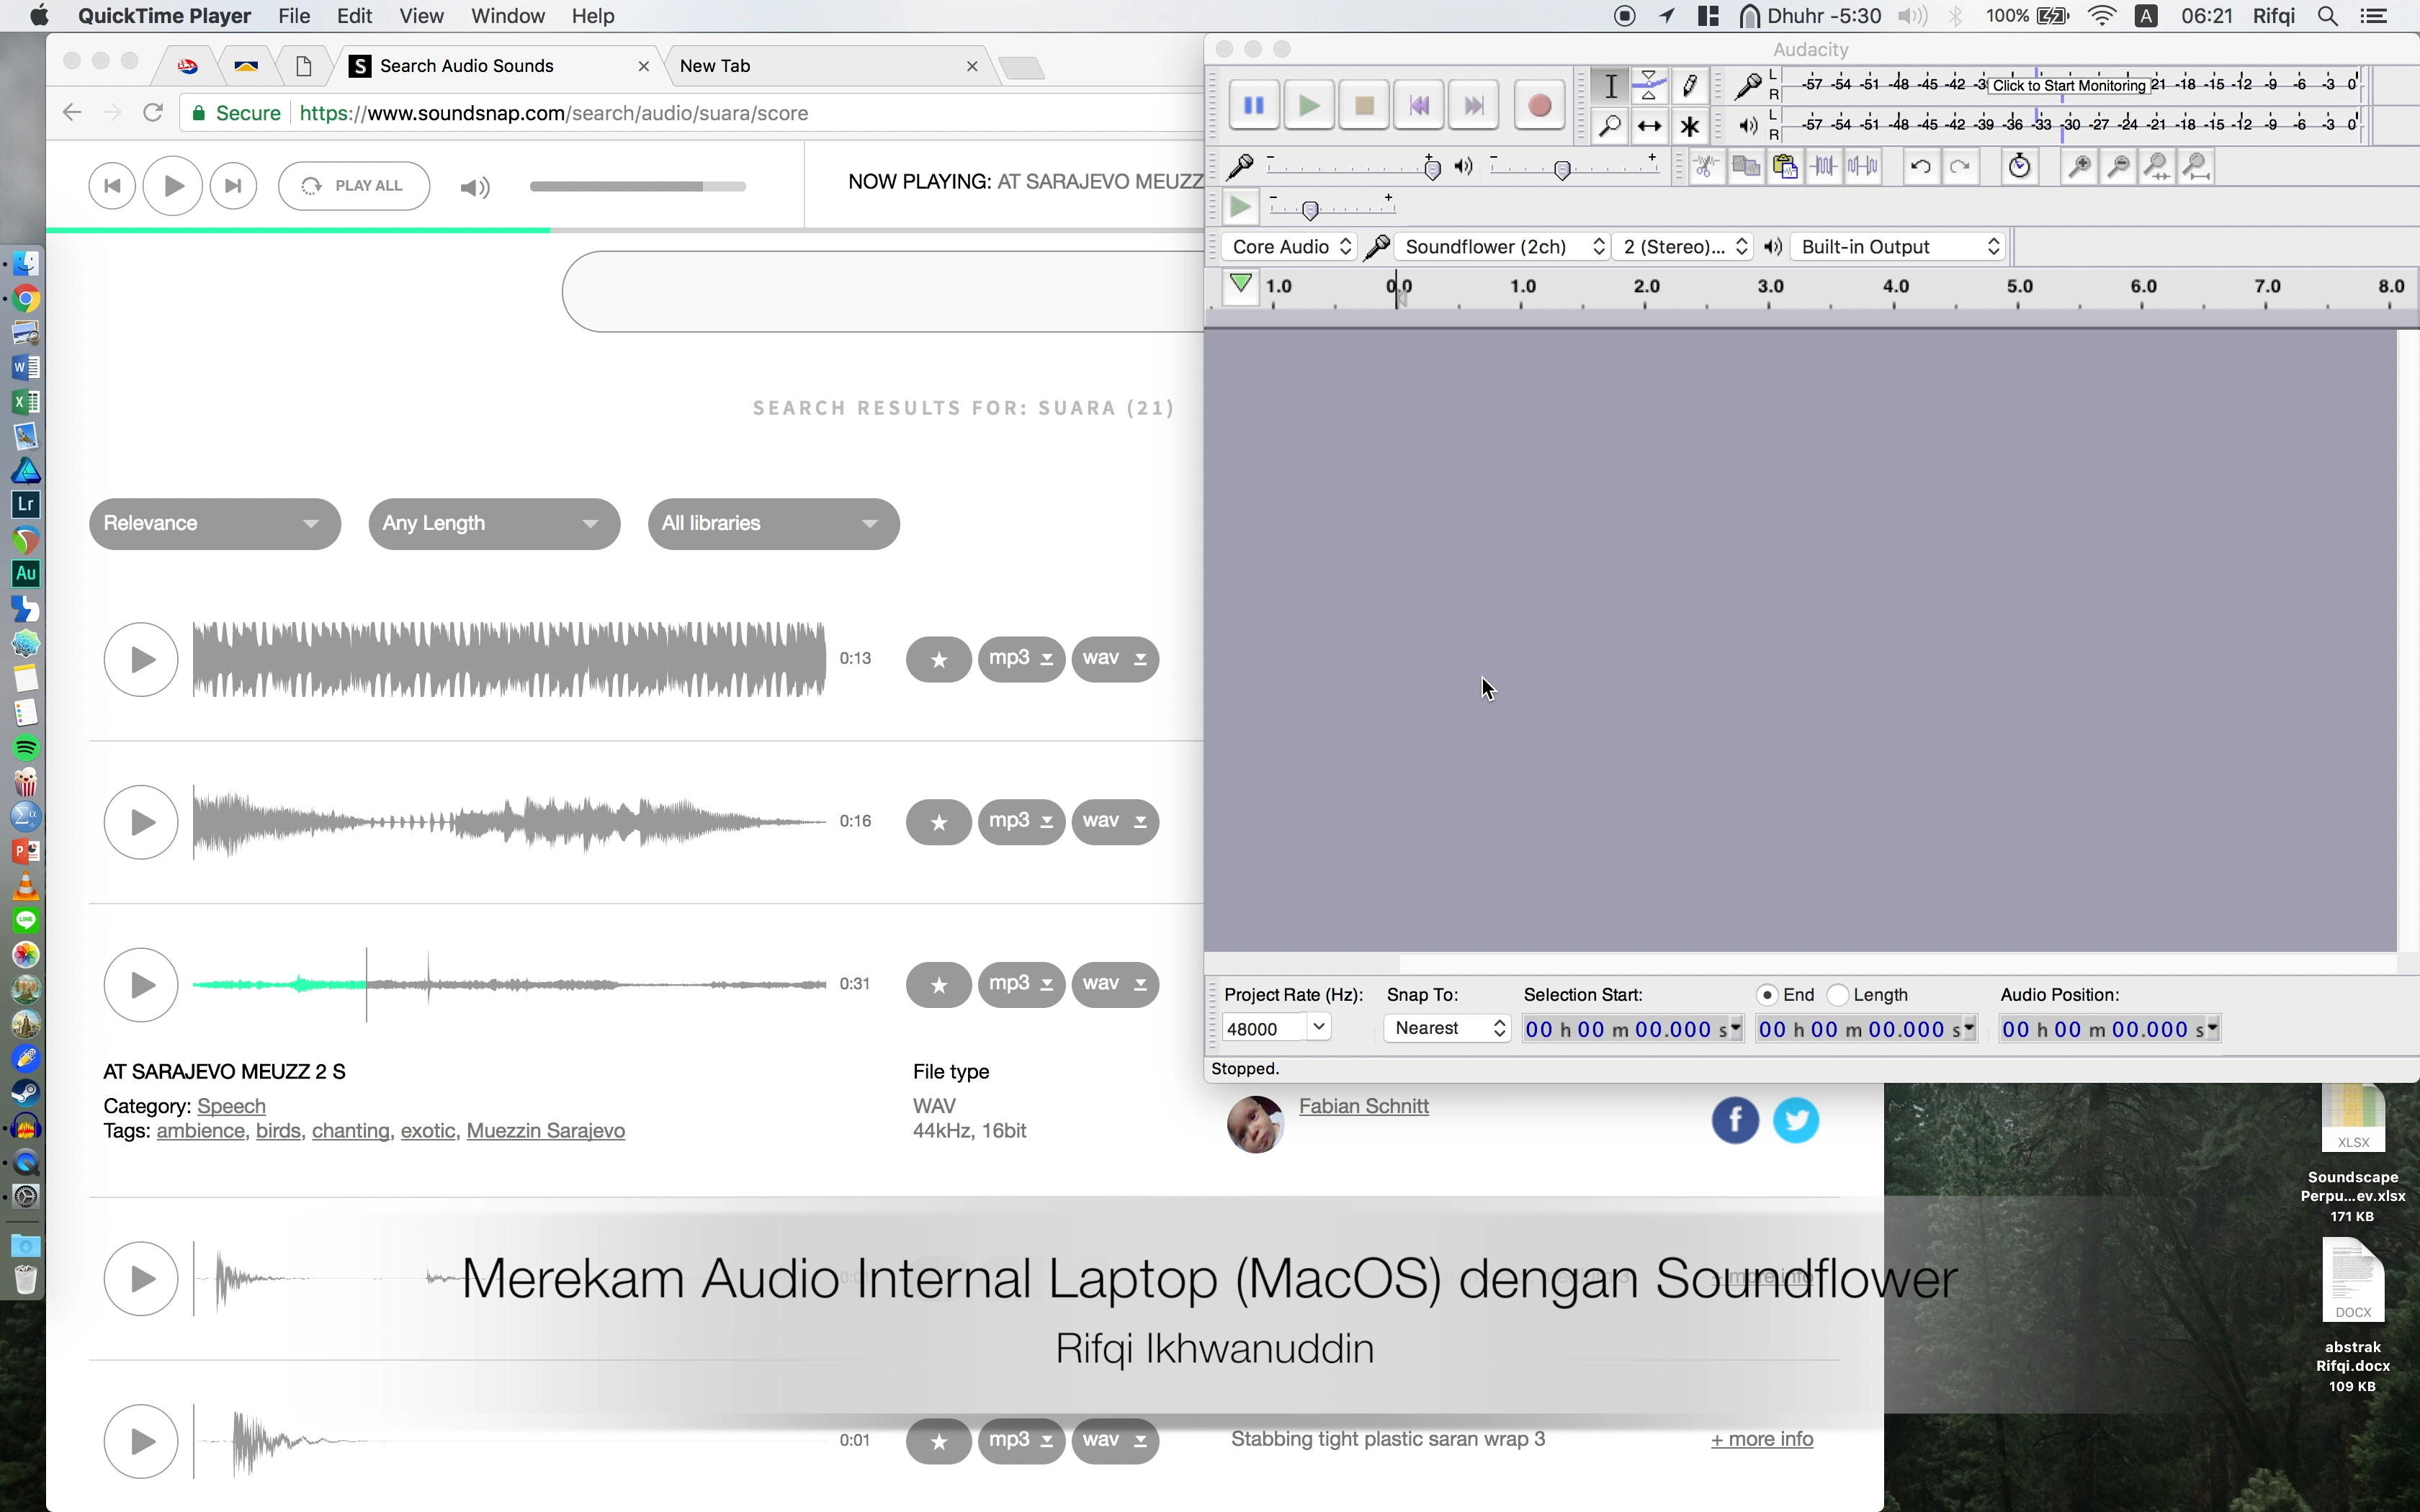 Merekam Audio Internal Laptop MacOS dengan Soundflower